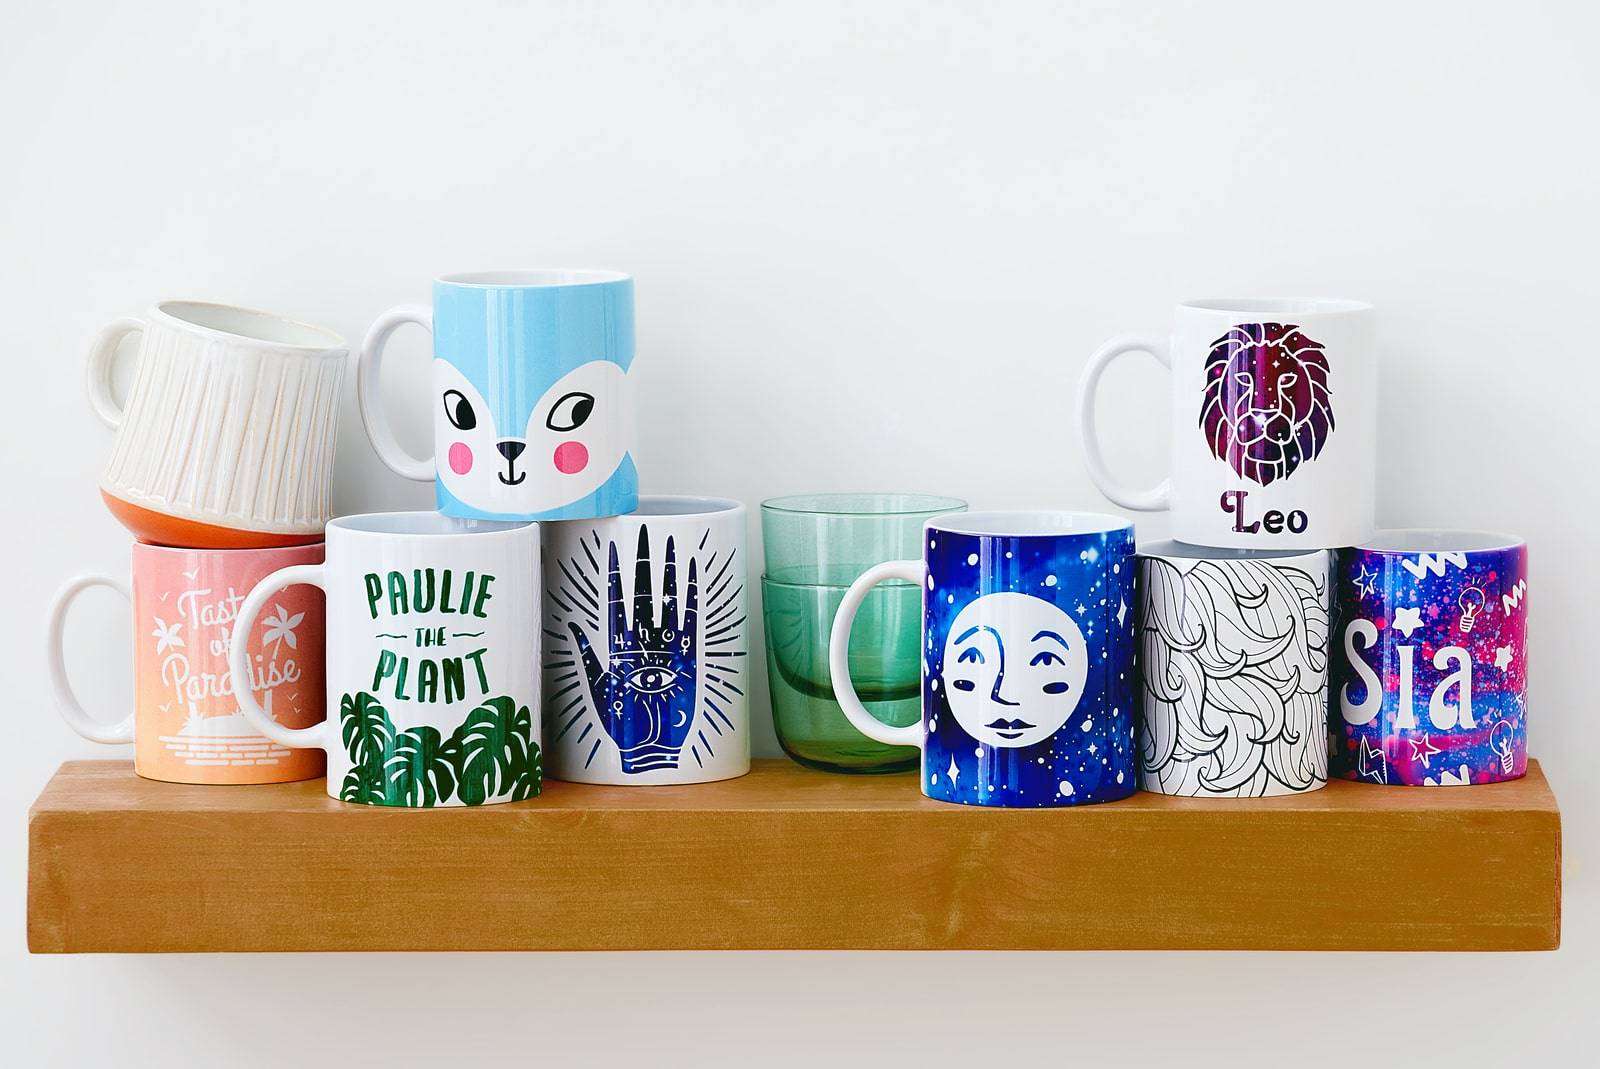 A variety of glasses and mugs setting on a kitchen shelf.